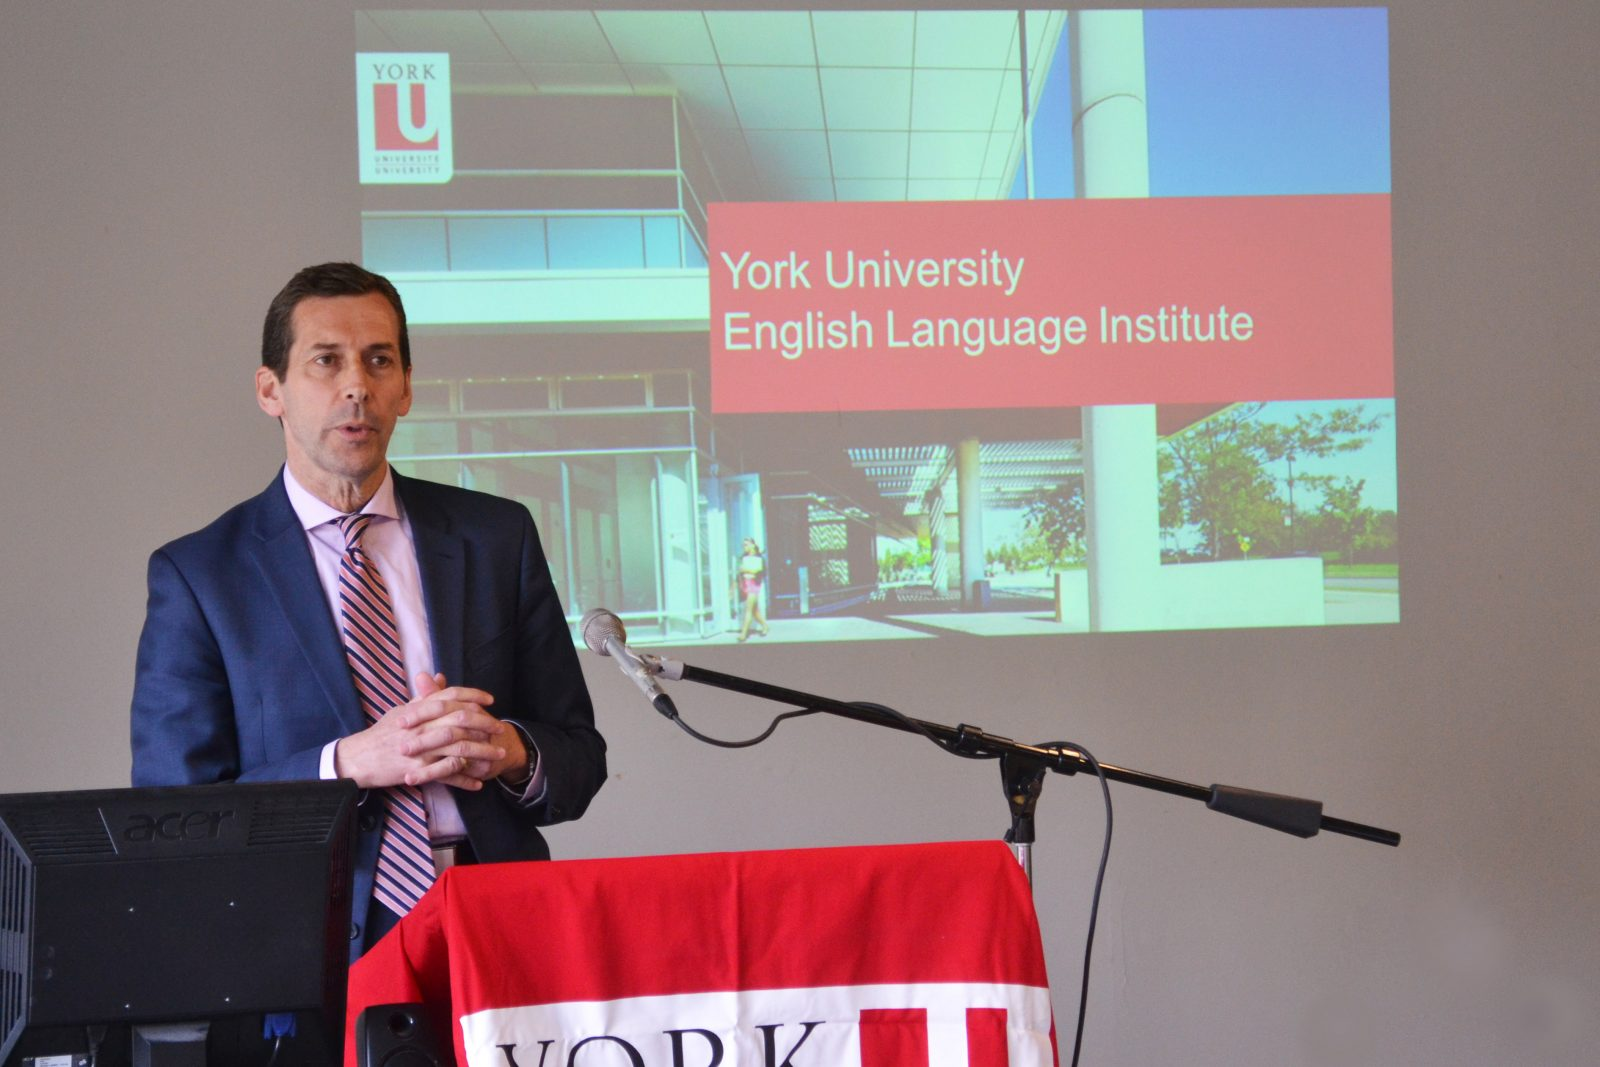 Associate Director, Special Programs, Michael Twohey provides an overview of YUELI to the international agents